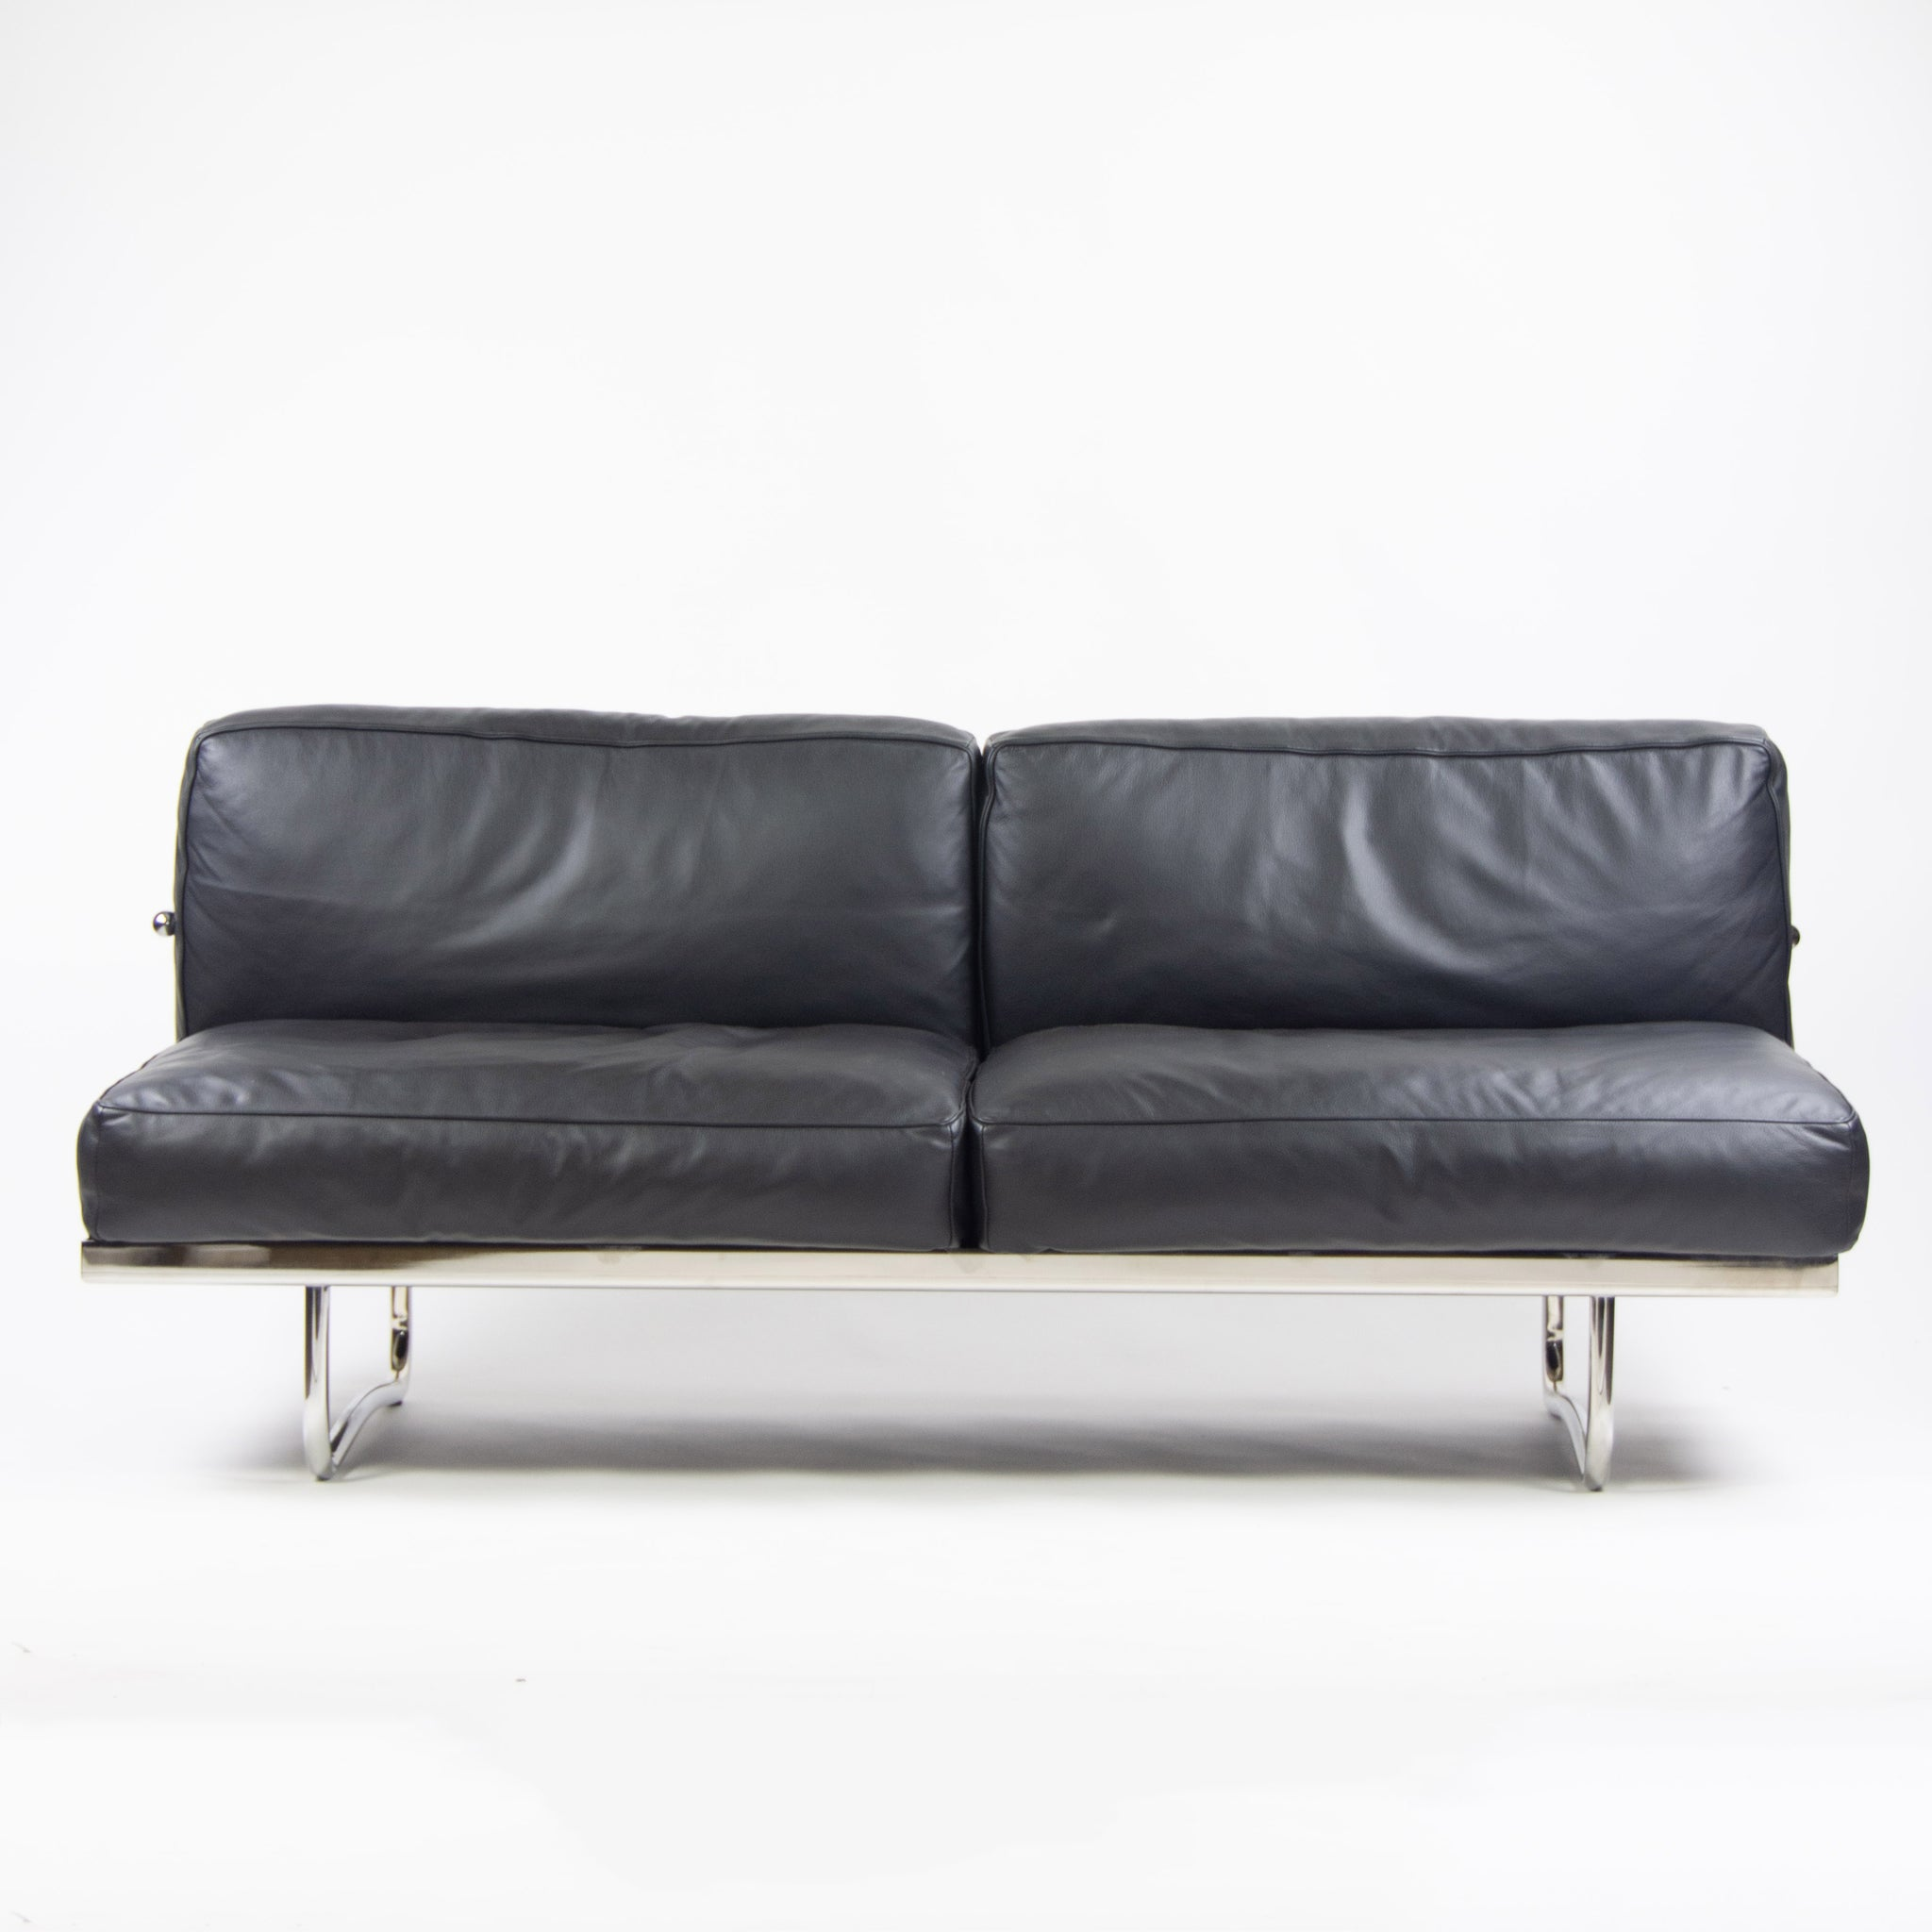 2010\'s Cassina Italy Le Corbusier LC5 Two-Seater Sofa Daybed Black Leather